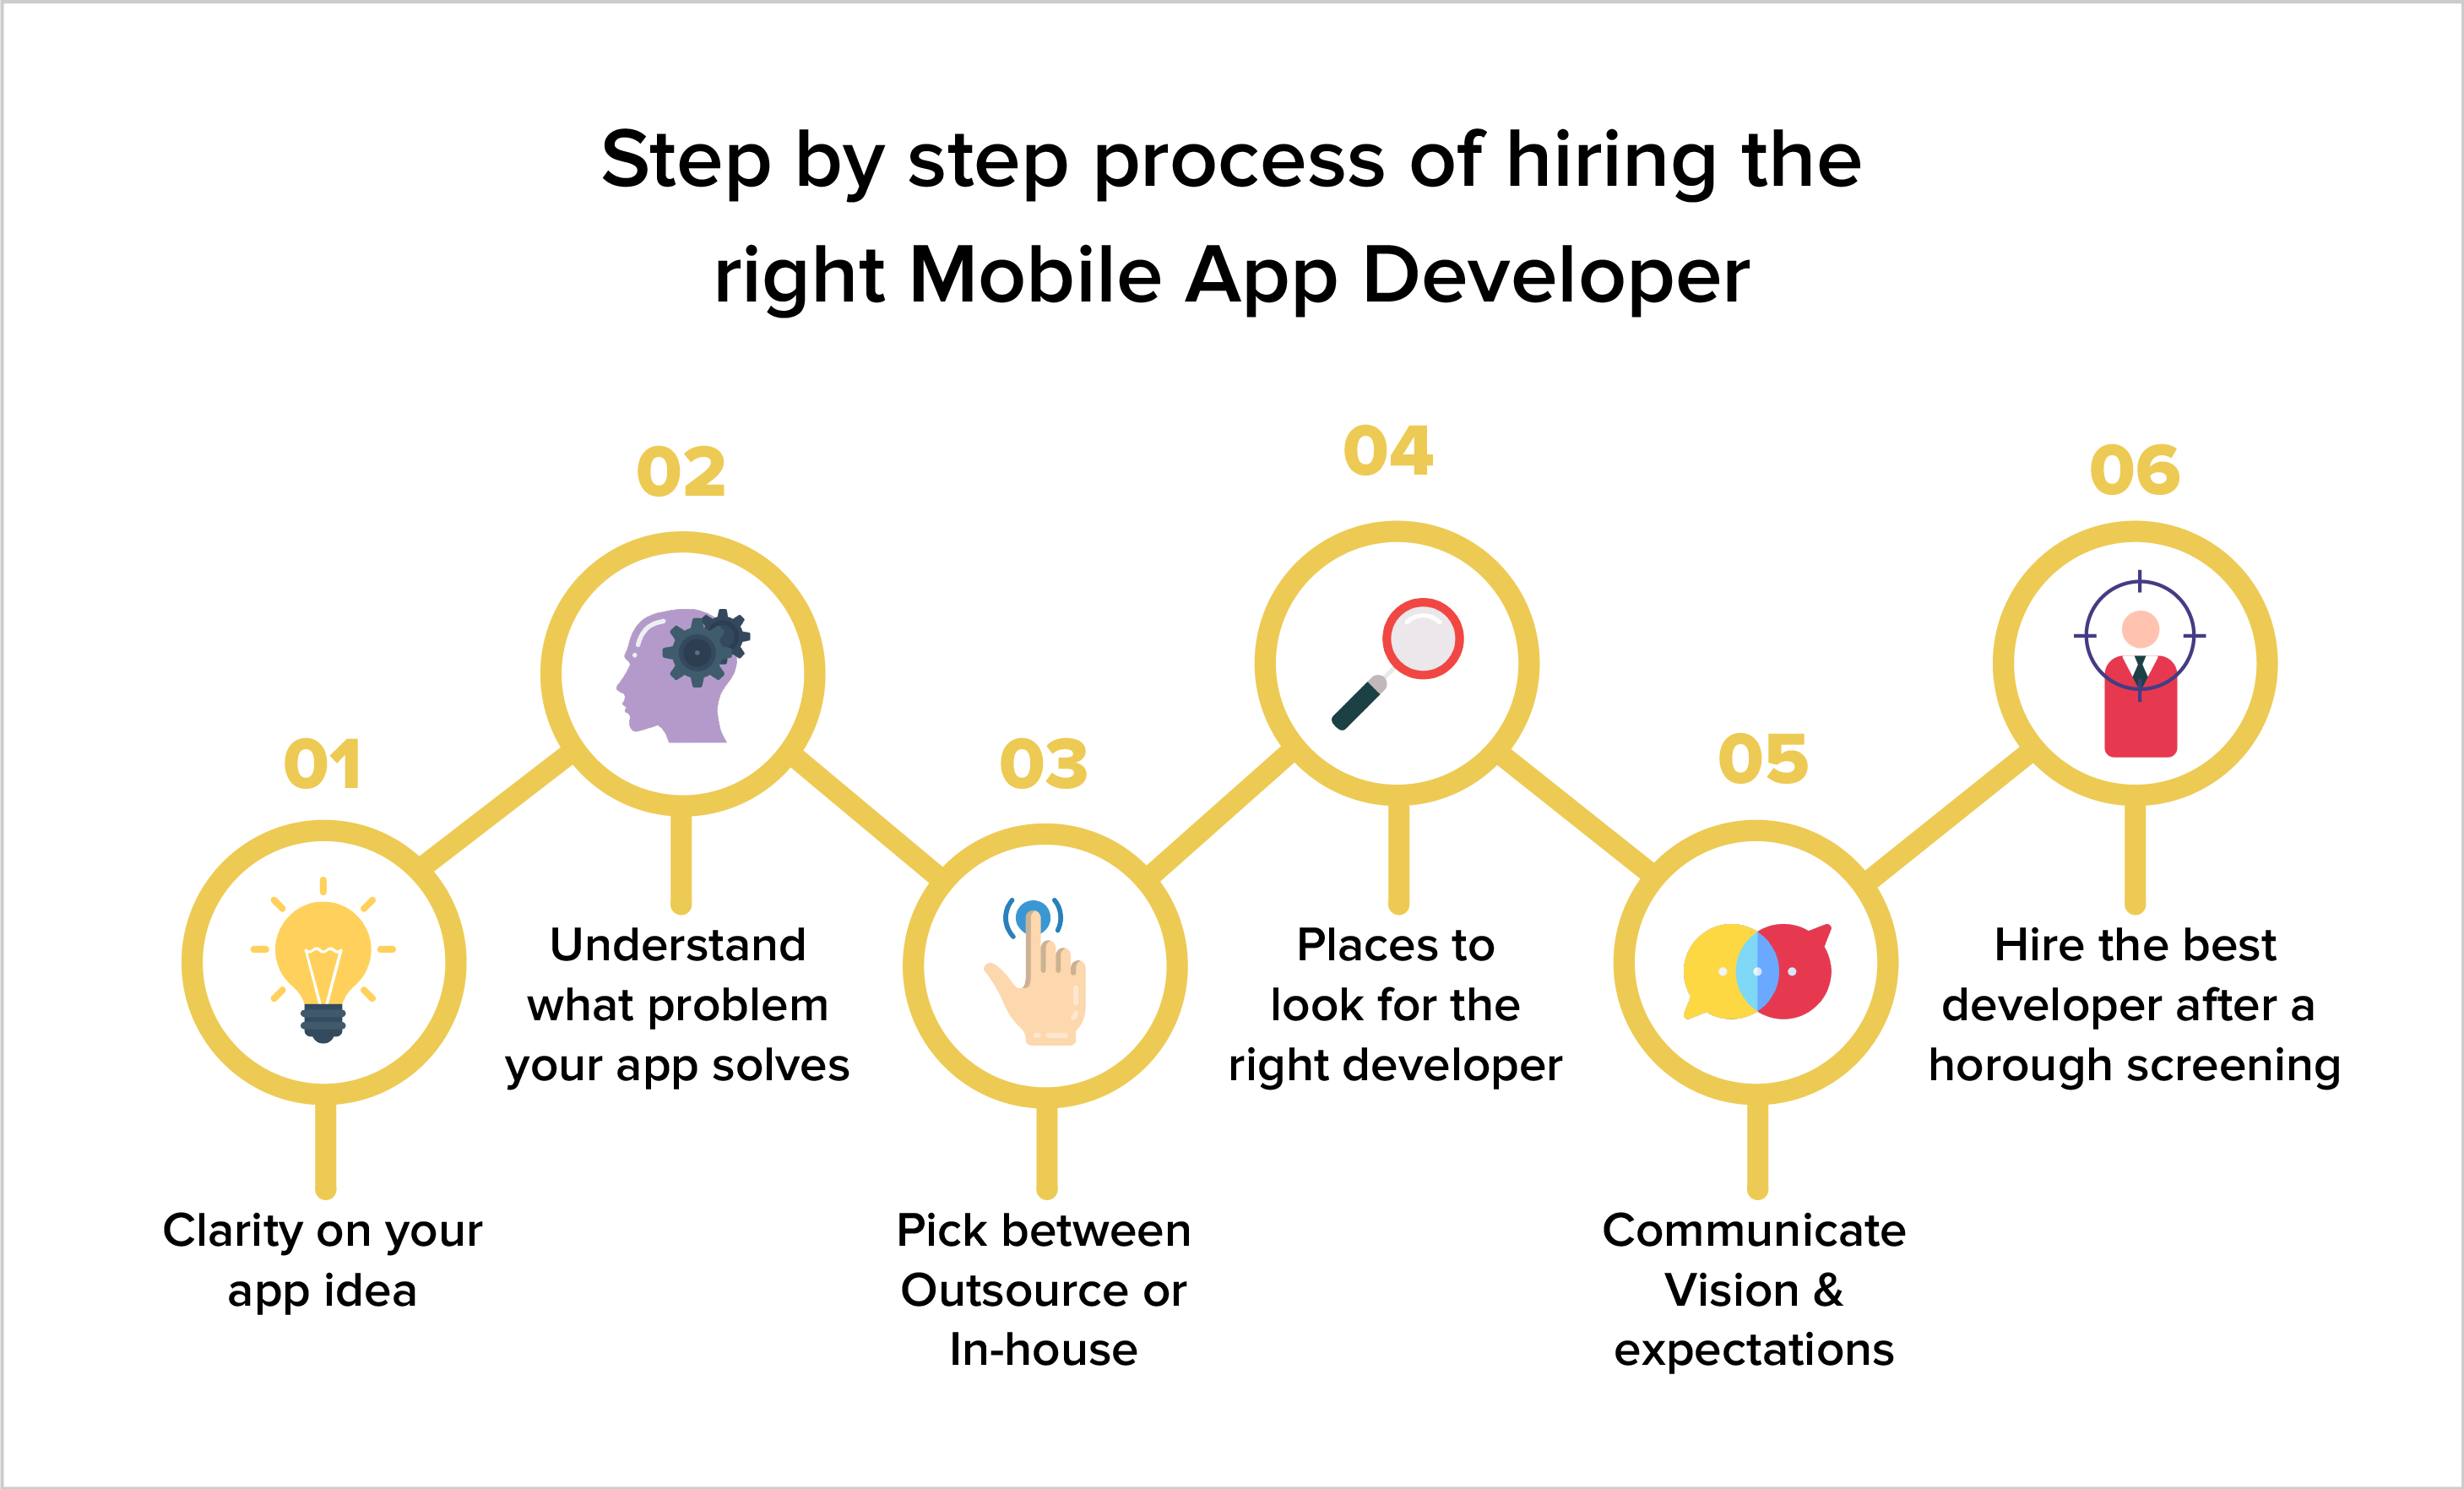 Step by step process of hiring the right Mobile App Developer